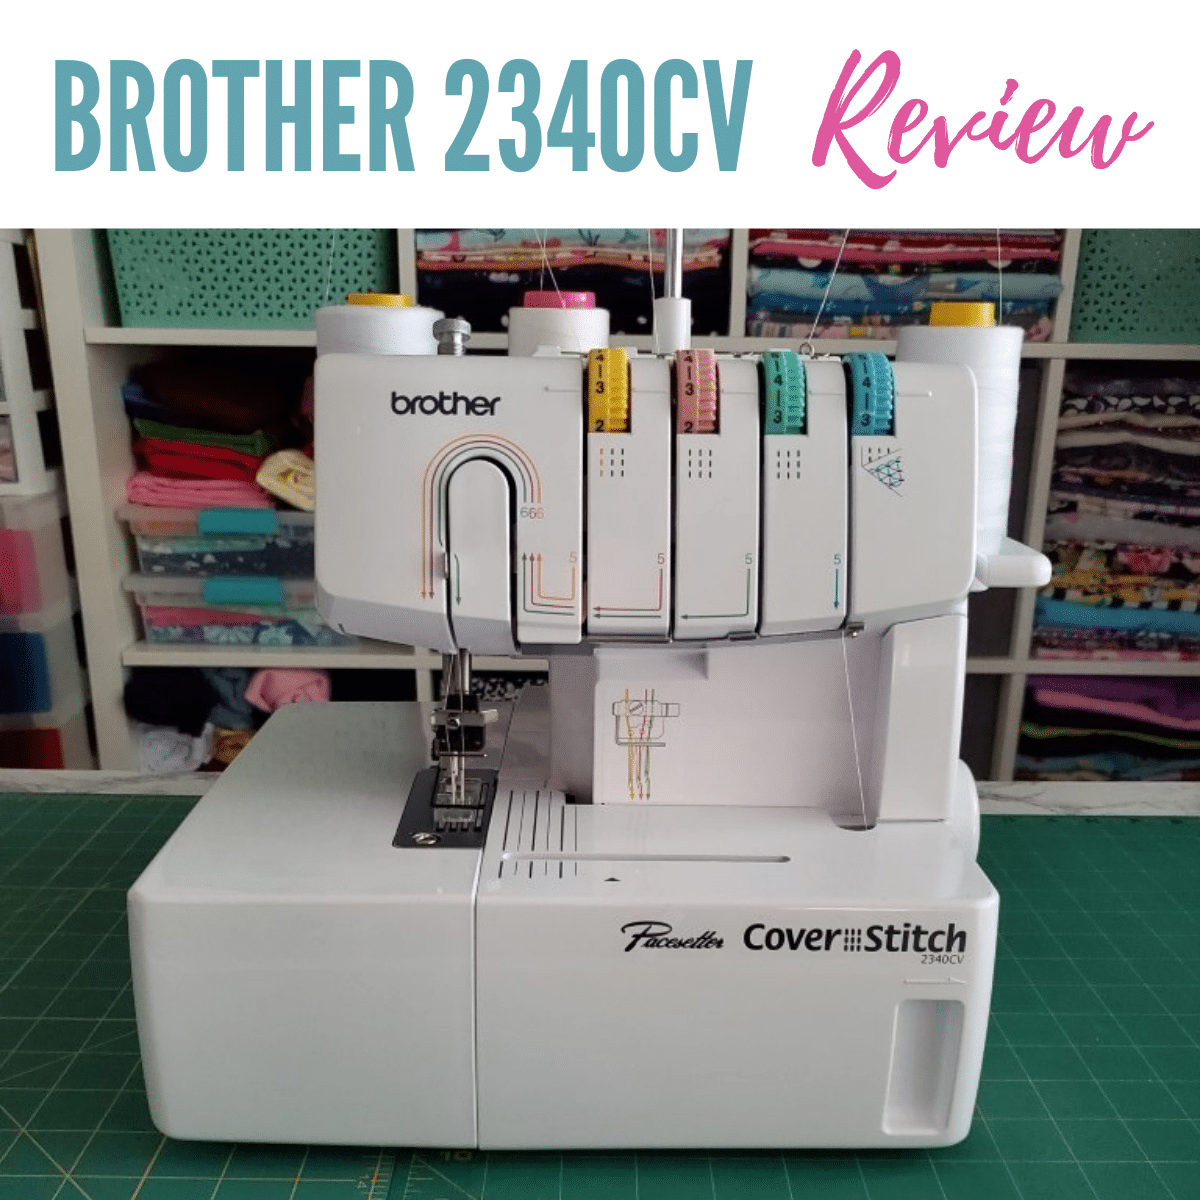 Brother 2340CV Cover Stitch Review + Tips for Use